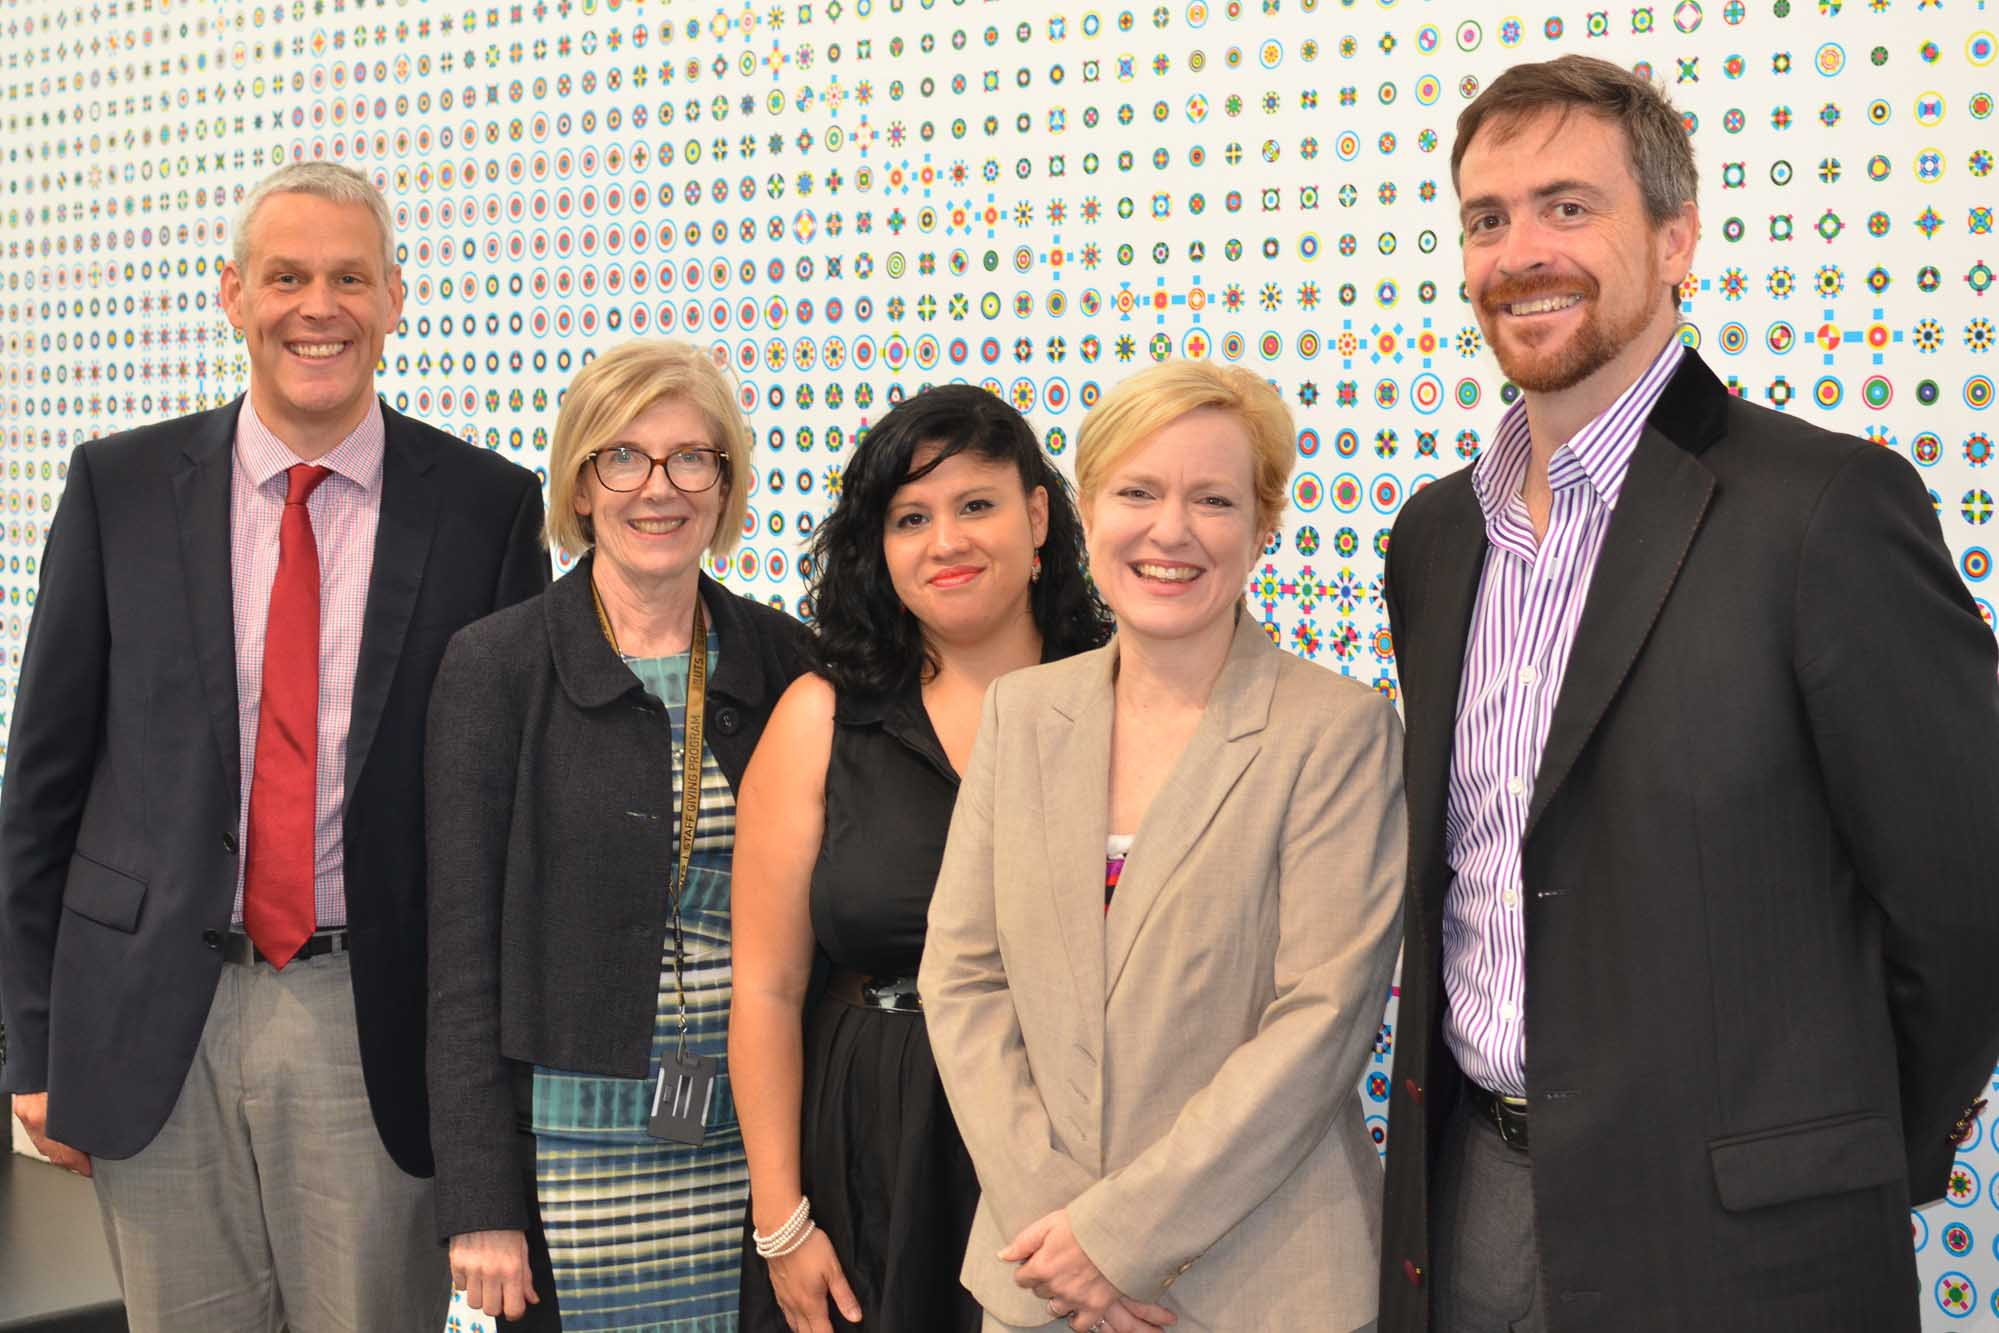 The UTS executive team at the Athena SWAN Pilot launch